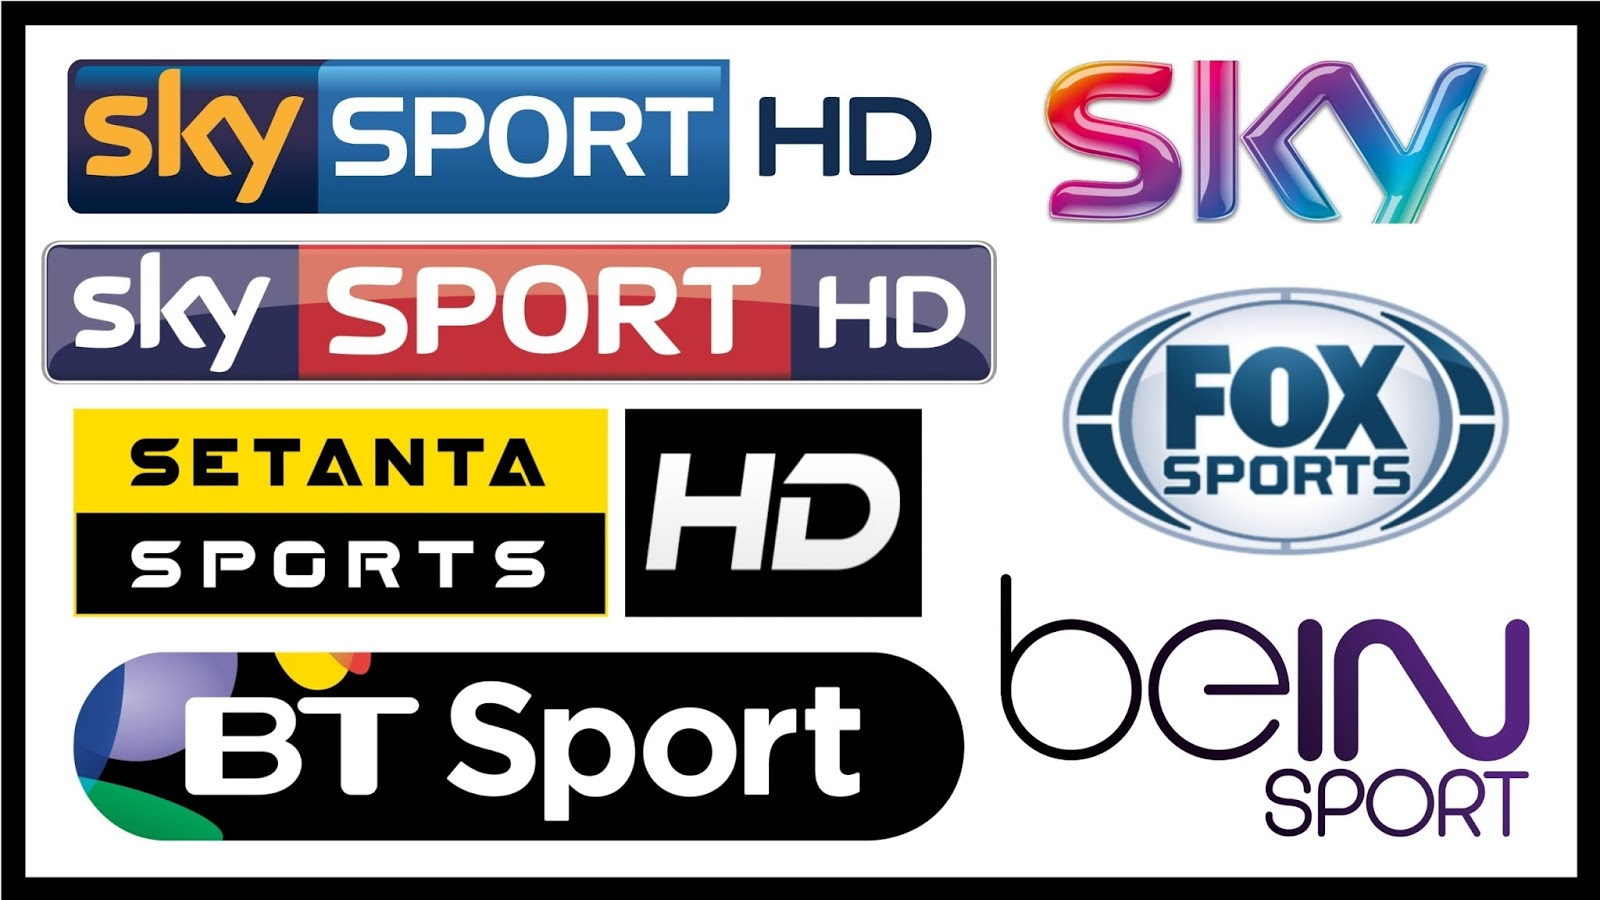 Sport channels arena bt tsn sky iptv for Sky sports 2 hd live streaming online free